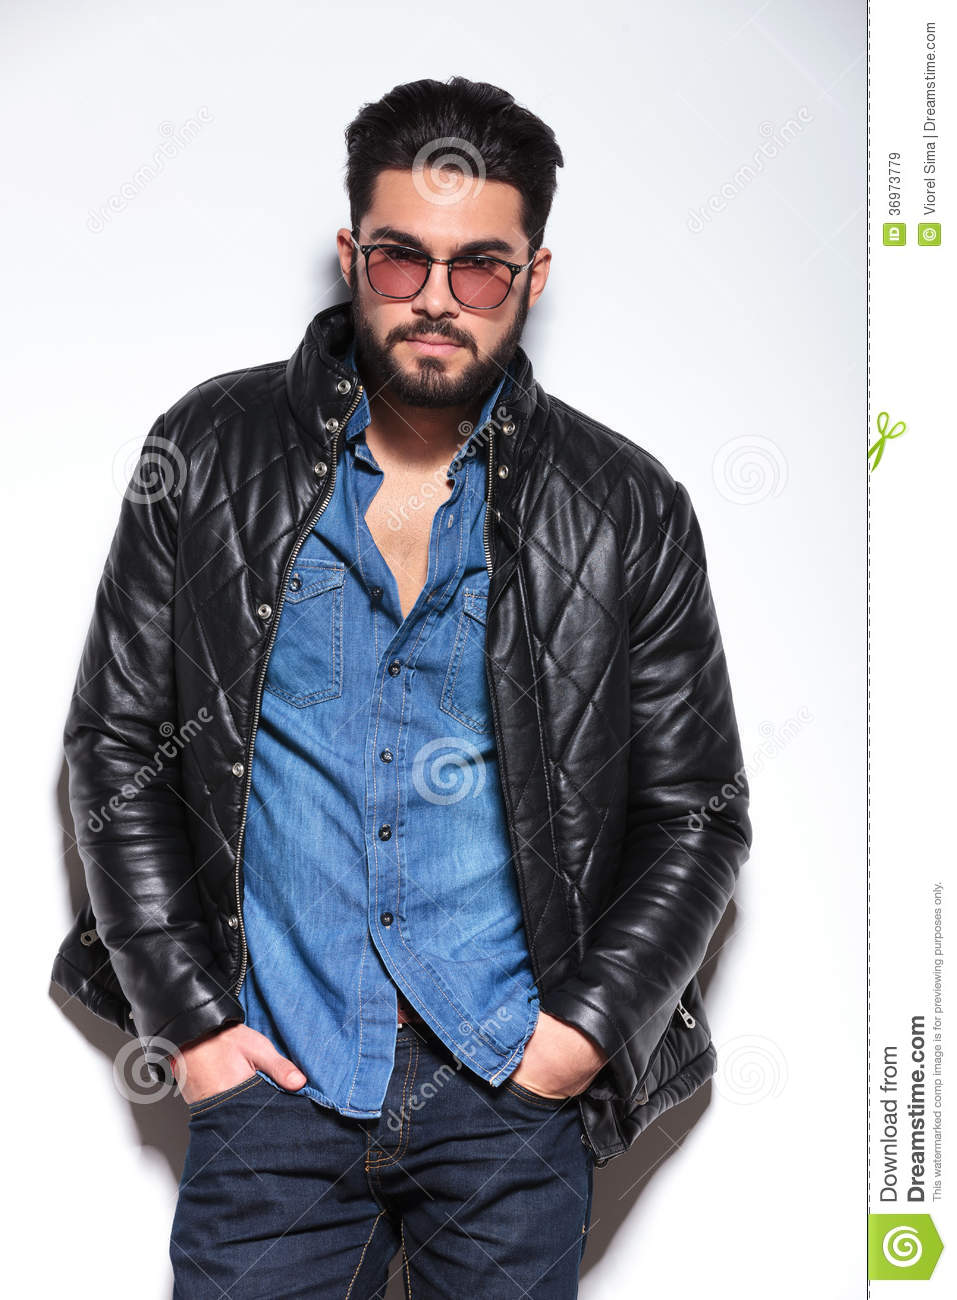 Fashion Man With Glasses And Leather Jacket Posing Royalty